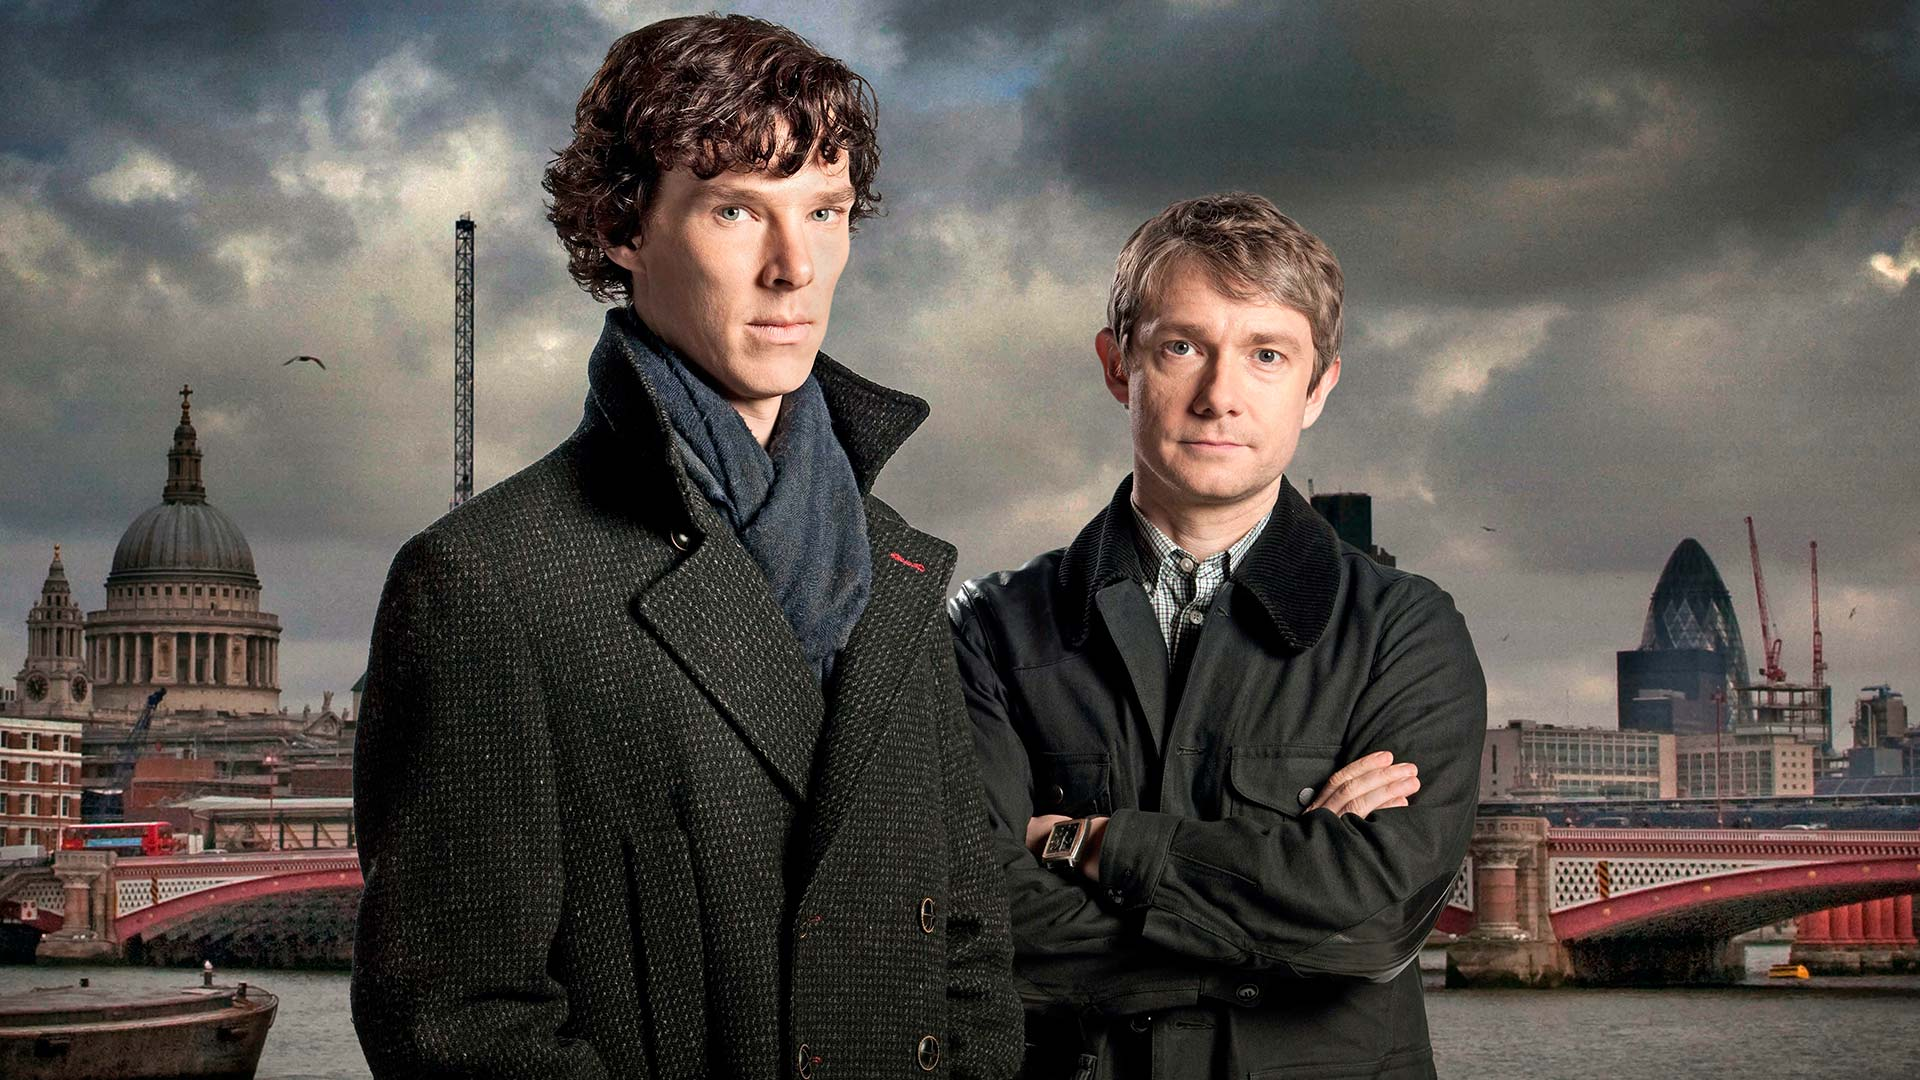 Sherlock Creators Team Up With Netflix, BBC for Dracula Miniseries